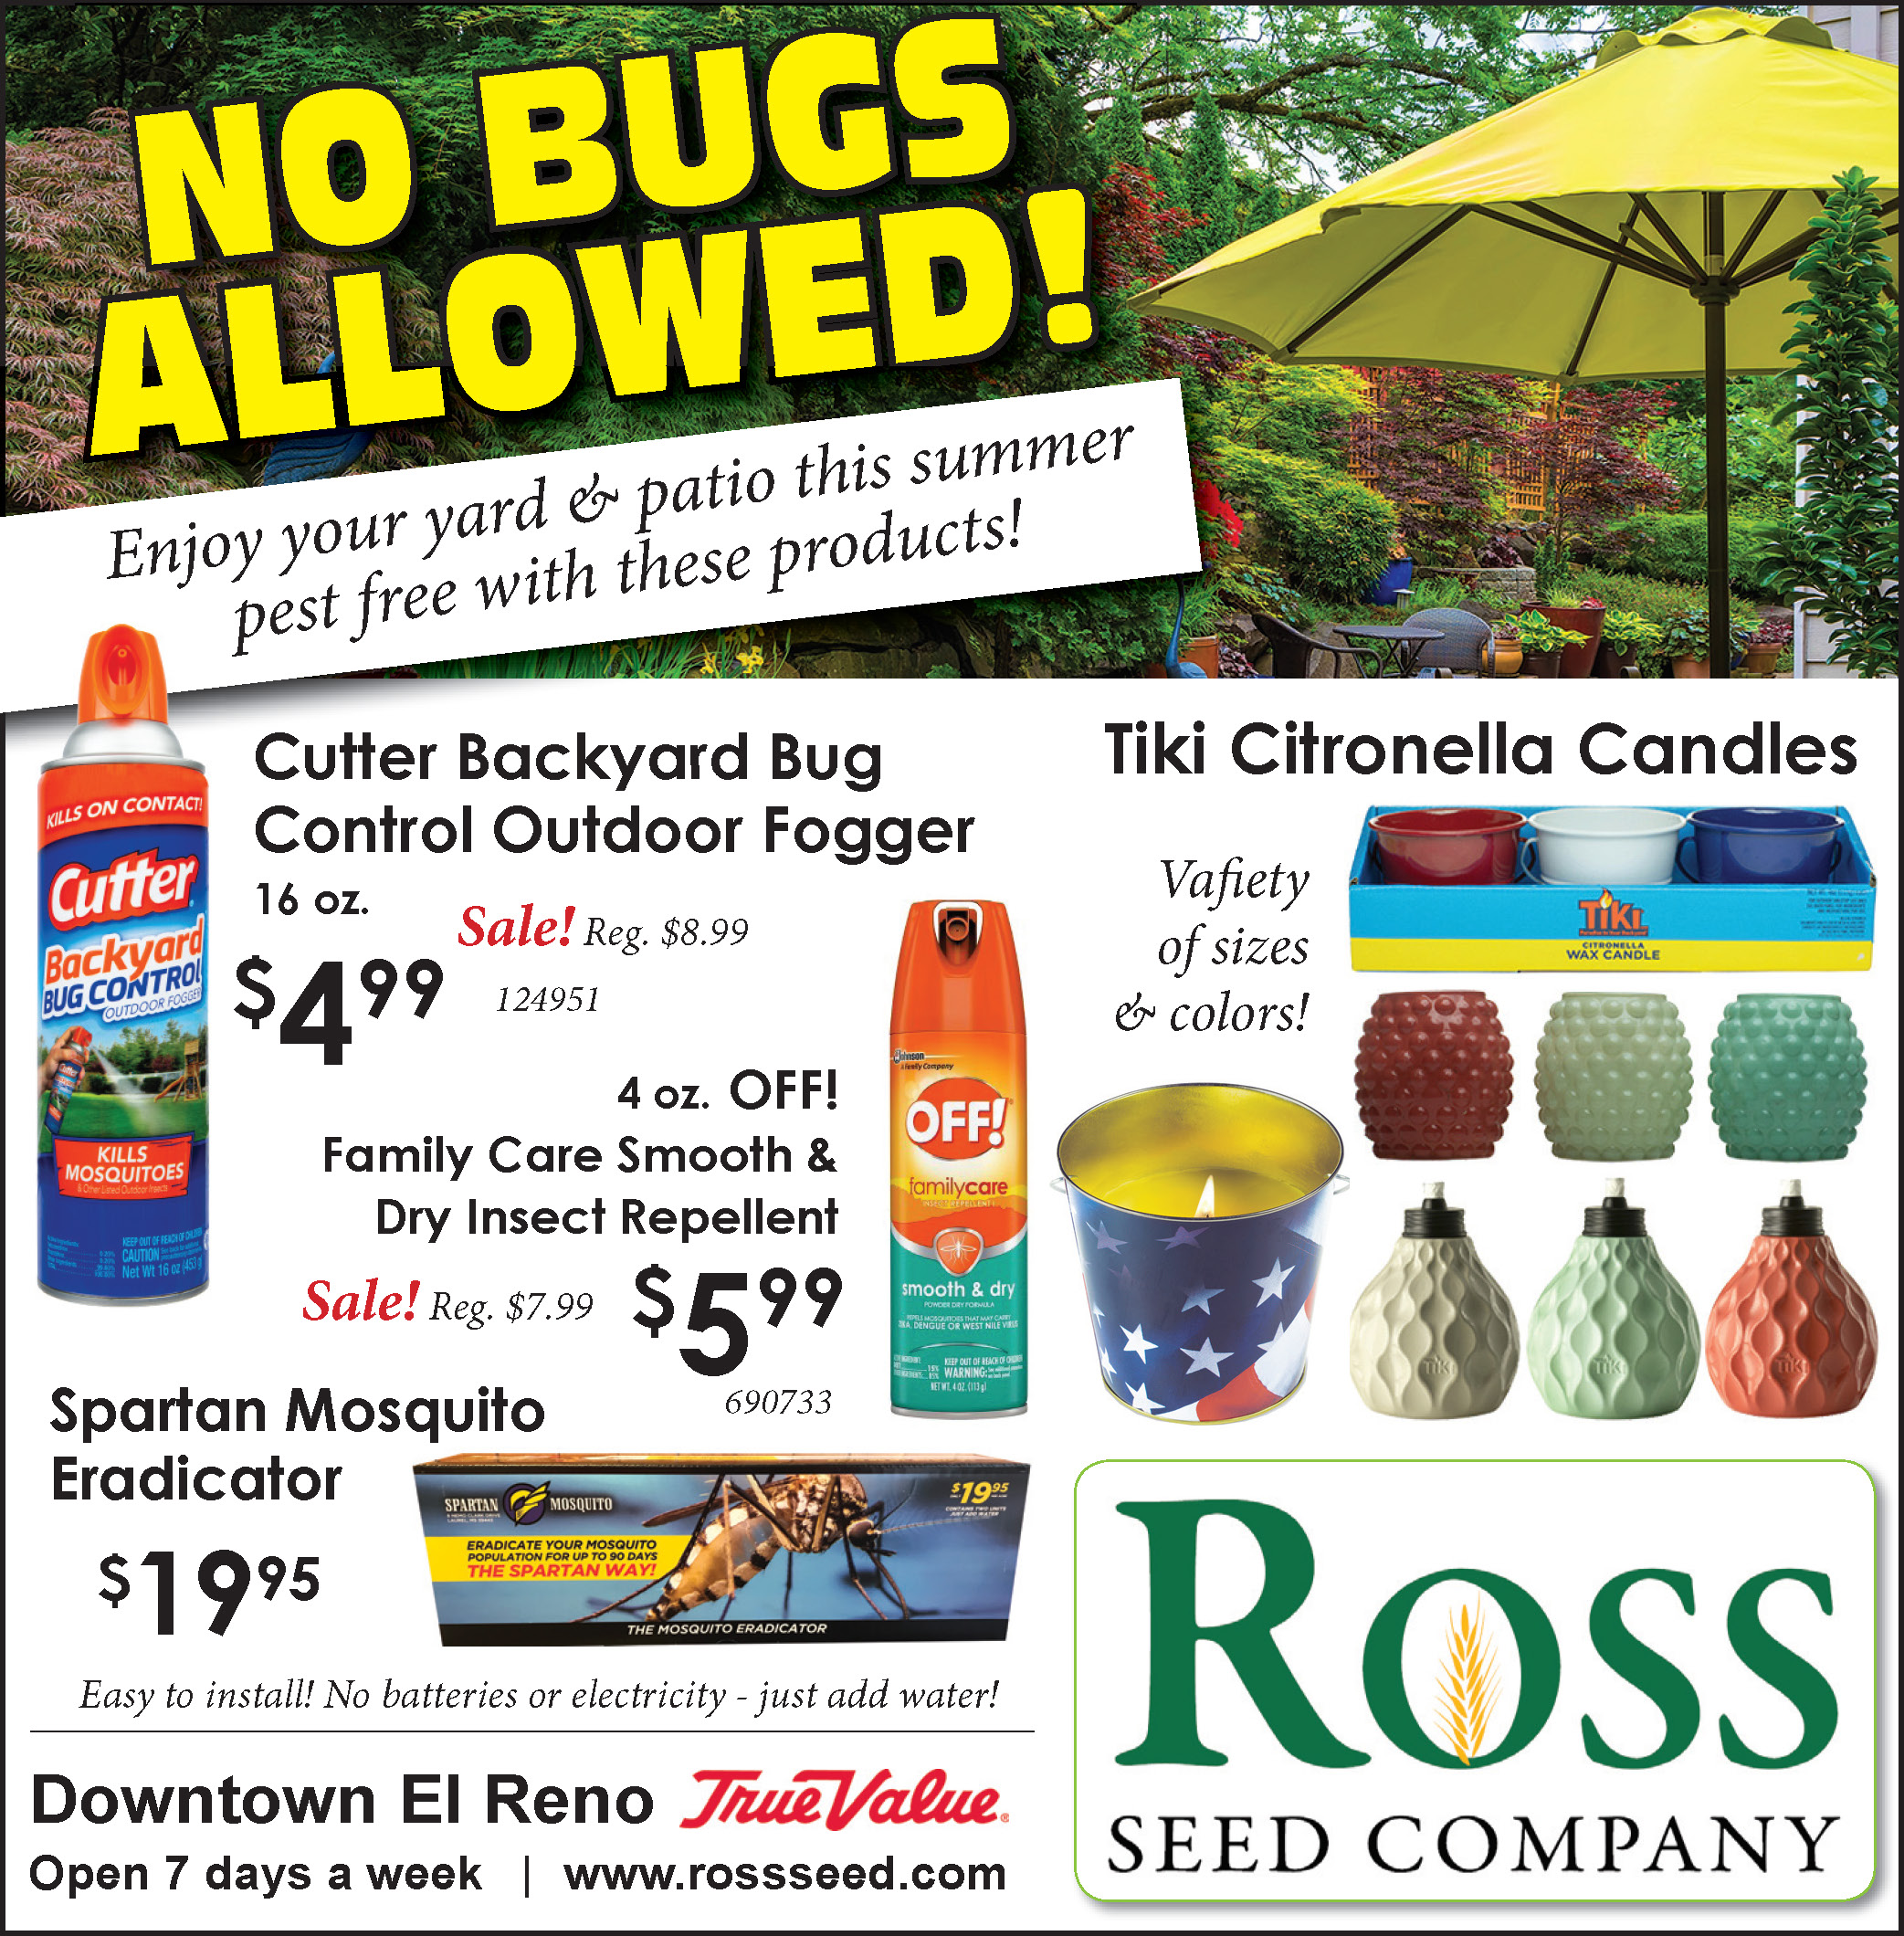 Ross Seed Co.